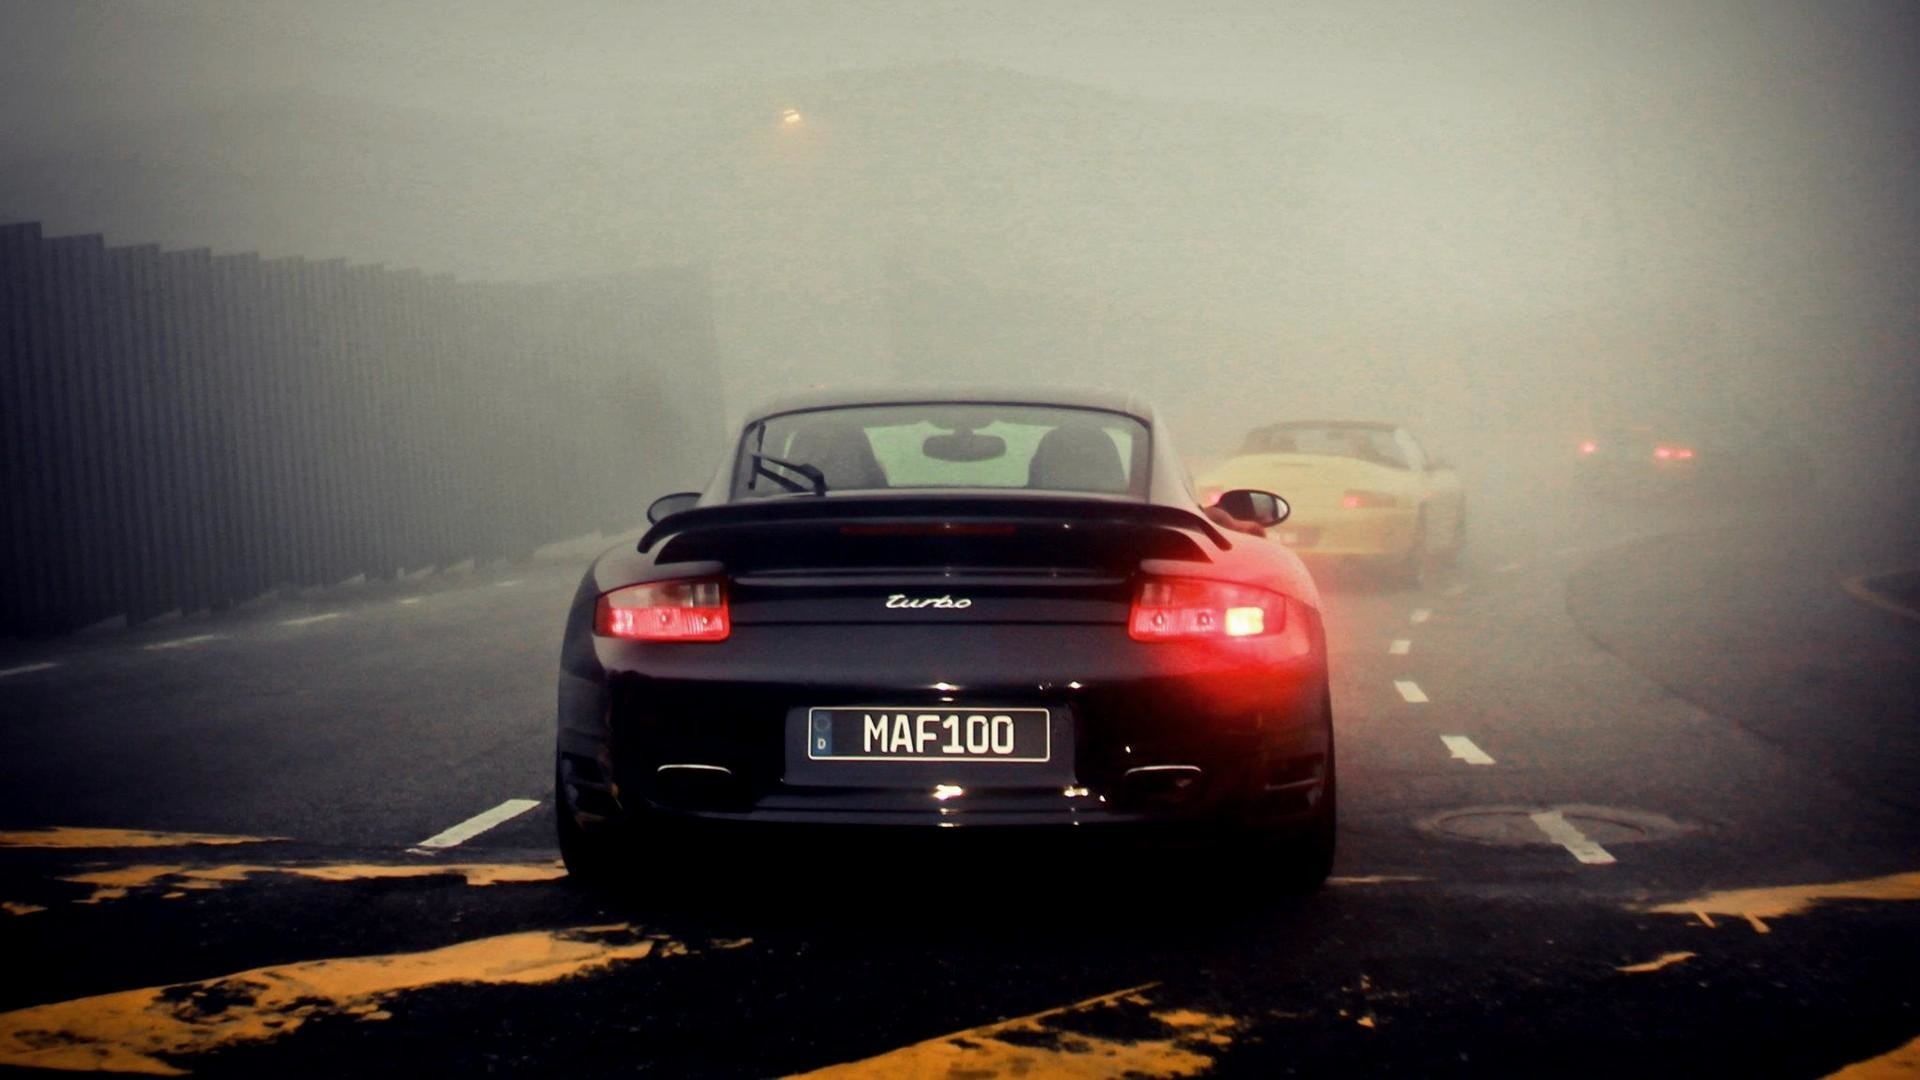 1920x1080 wallpaper.wiki-Porsche-911-Turbo-Black-Background-PIC-